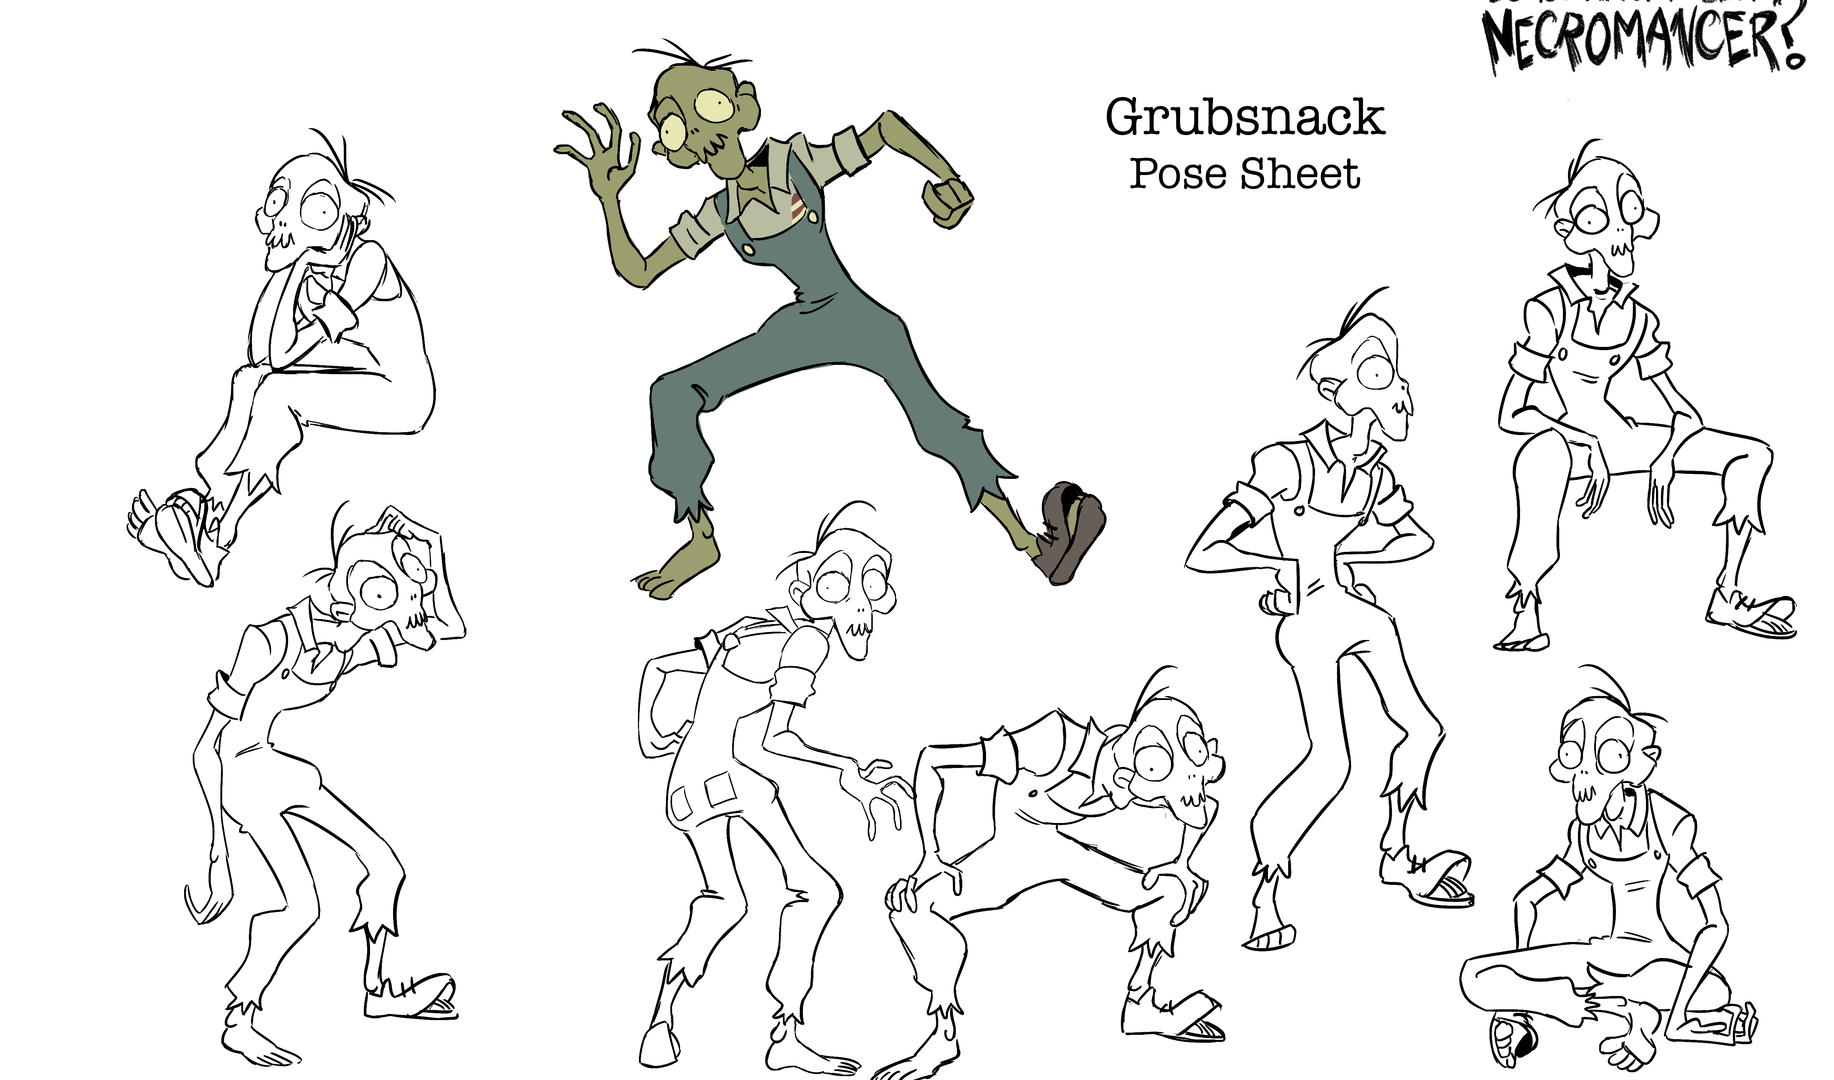 Pose Sheet - Grubsnack